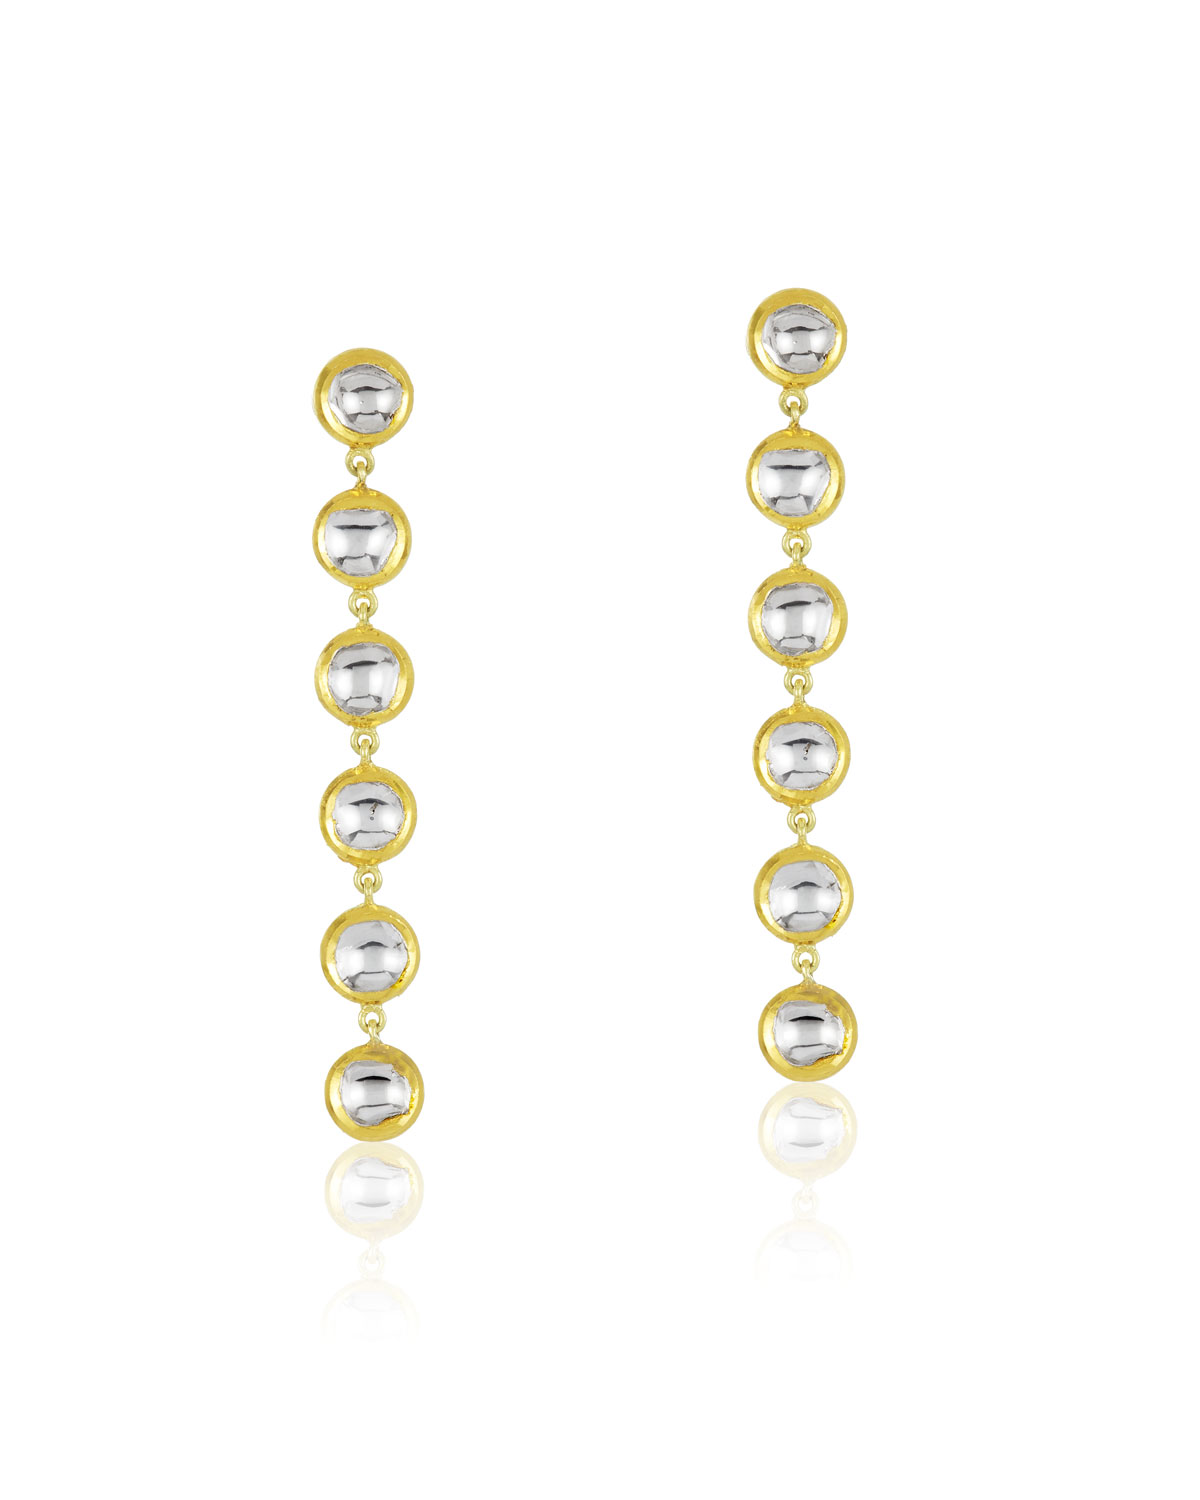 LEGEND AMRAPALI Kundan Vintage Diamond Round Linear Earrings In 18K Gold